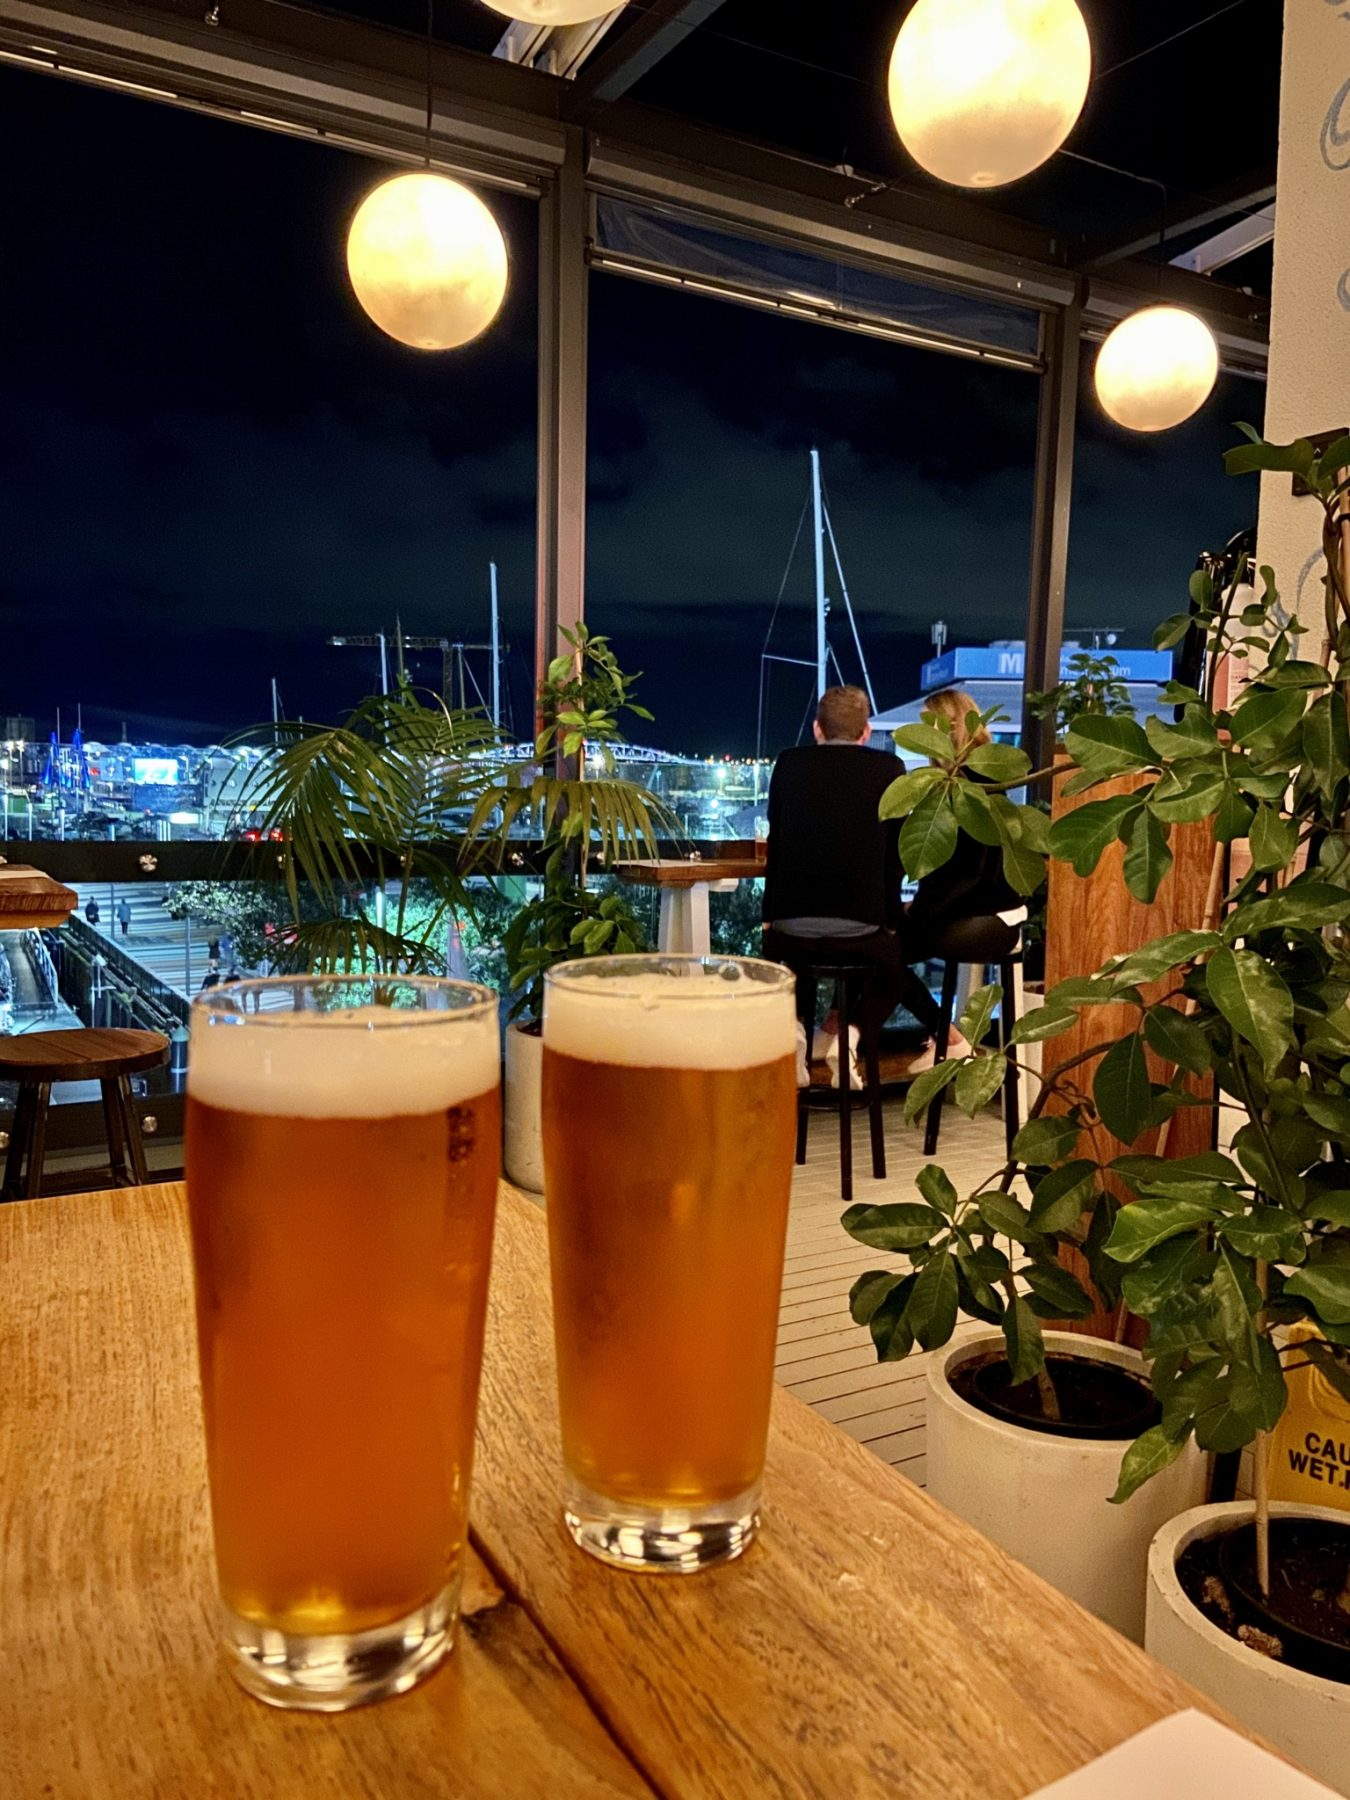 Saint Alice Beers - Viaduct Harbour (Auckland) - Where To Go